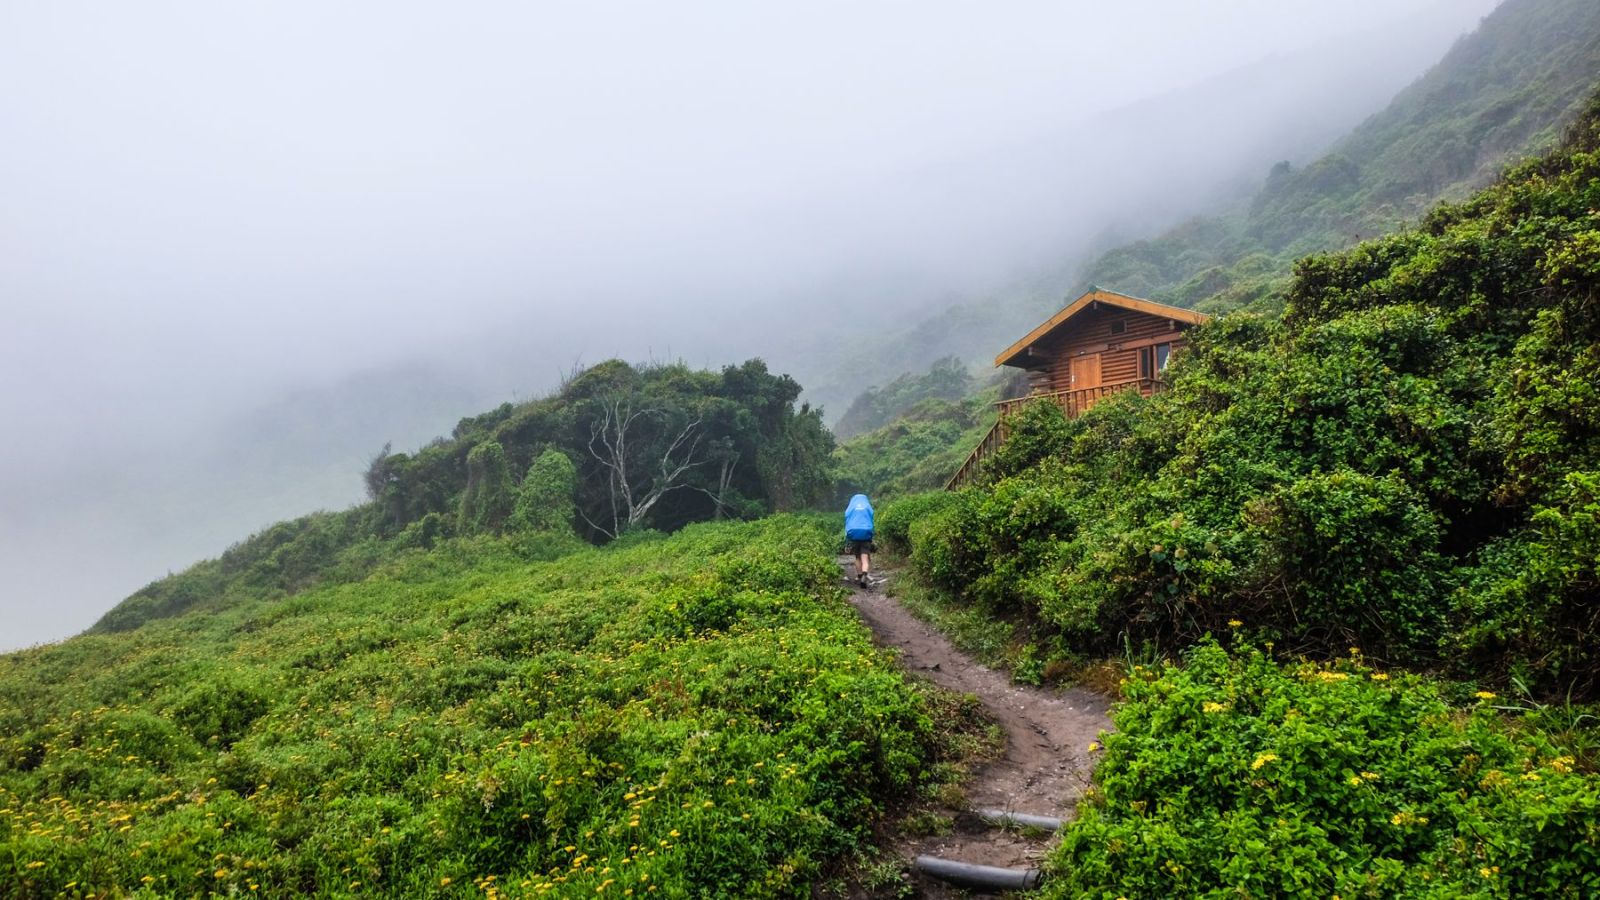 a photo of a hiker on the otter trail and a overnight hut in the background